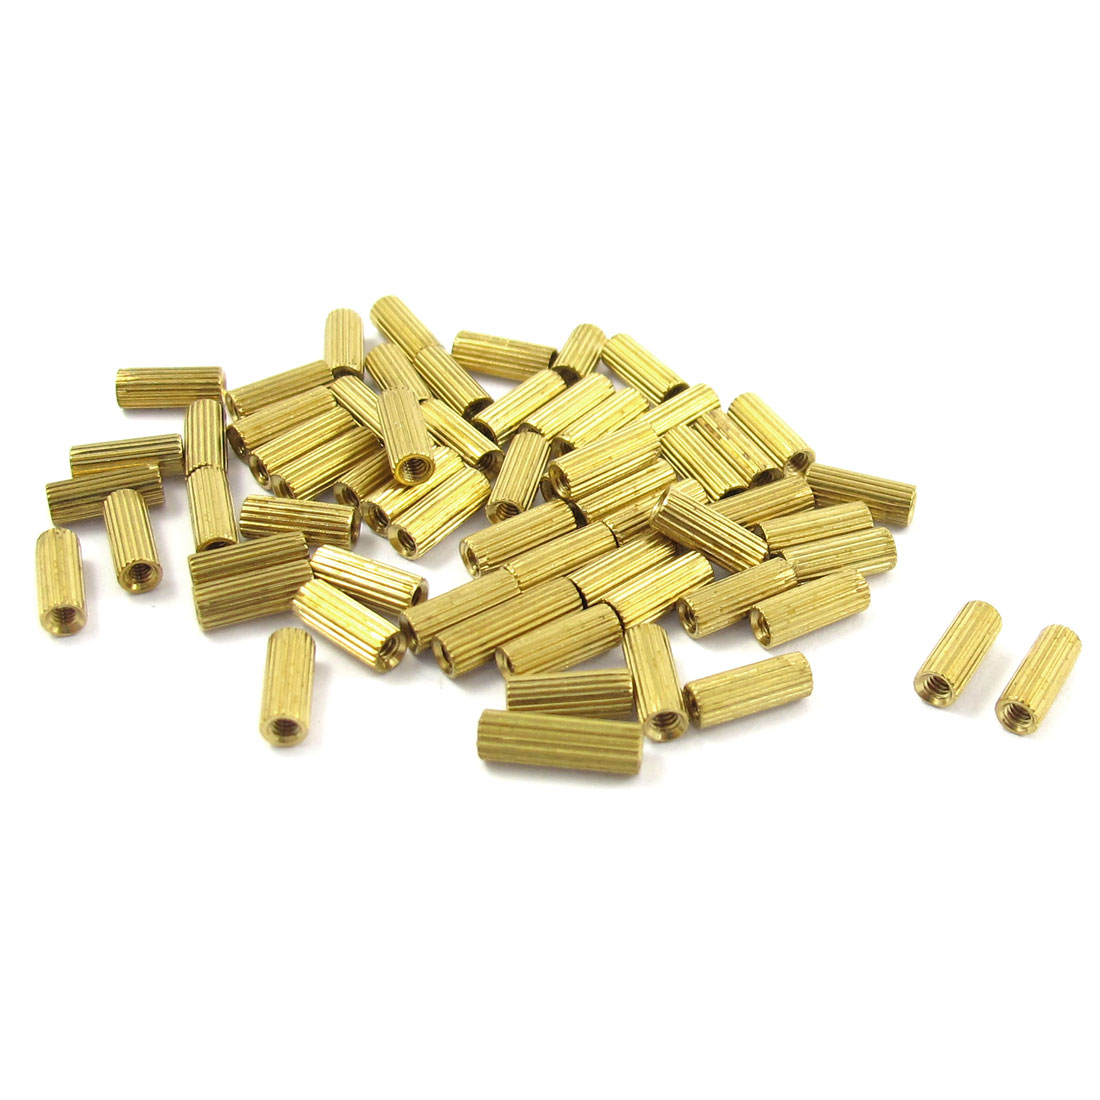 50 Pcs Female Threaded Pillars Brass Standoff Spacer Gold Tone M2x8mm